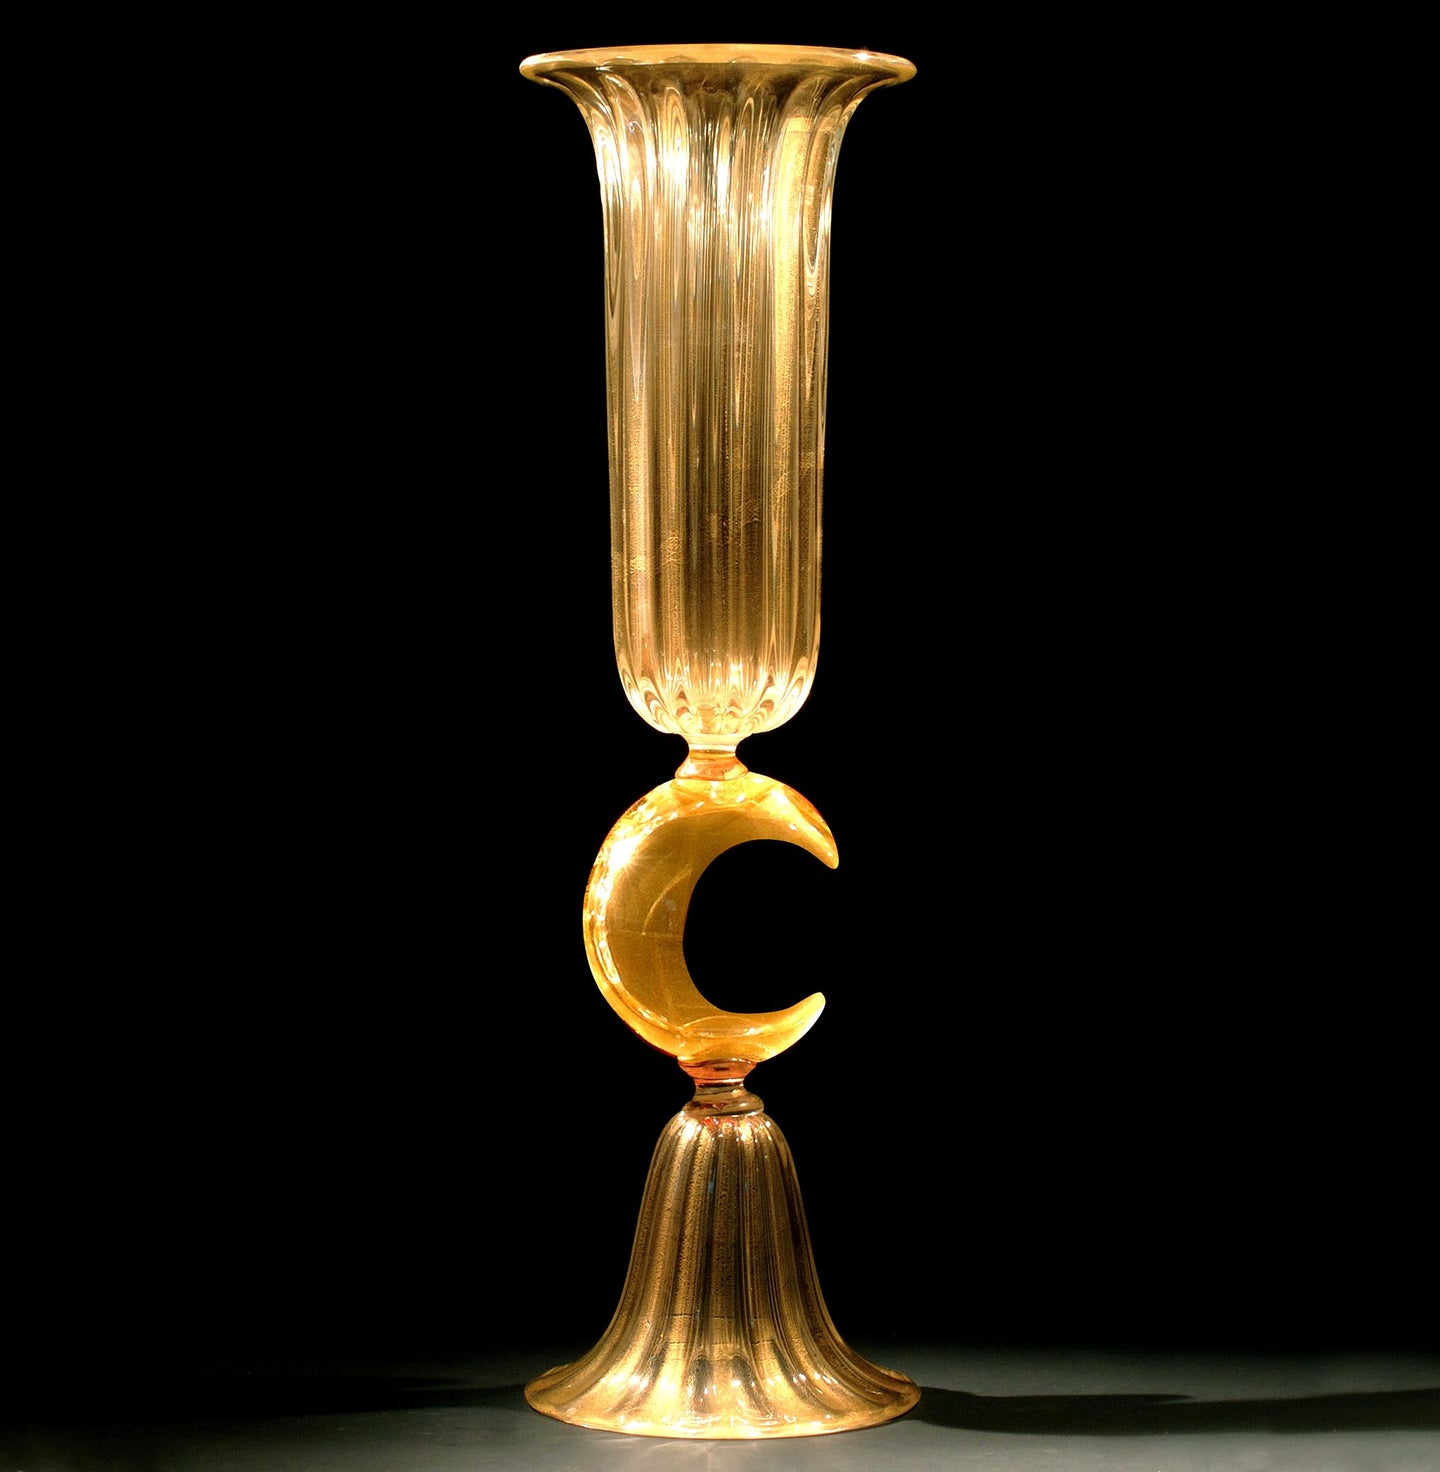 LUNA Large Murano Glass Vase